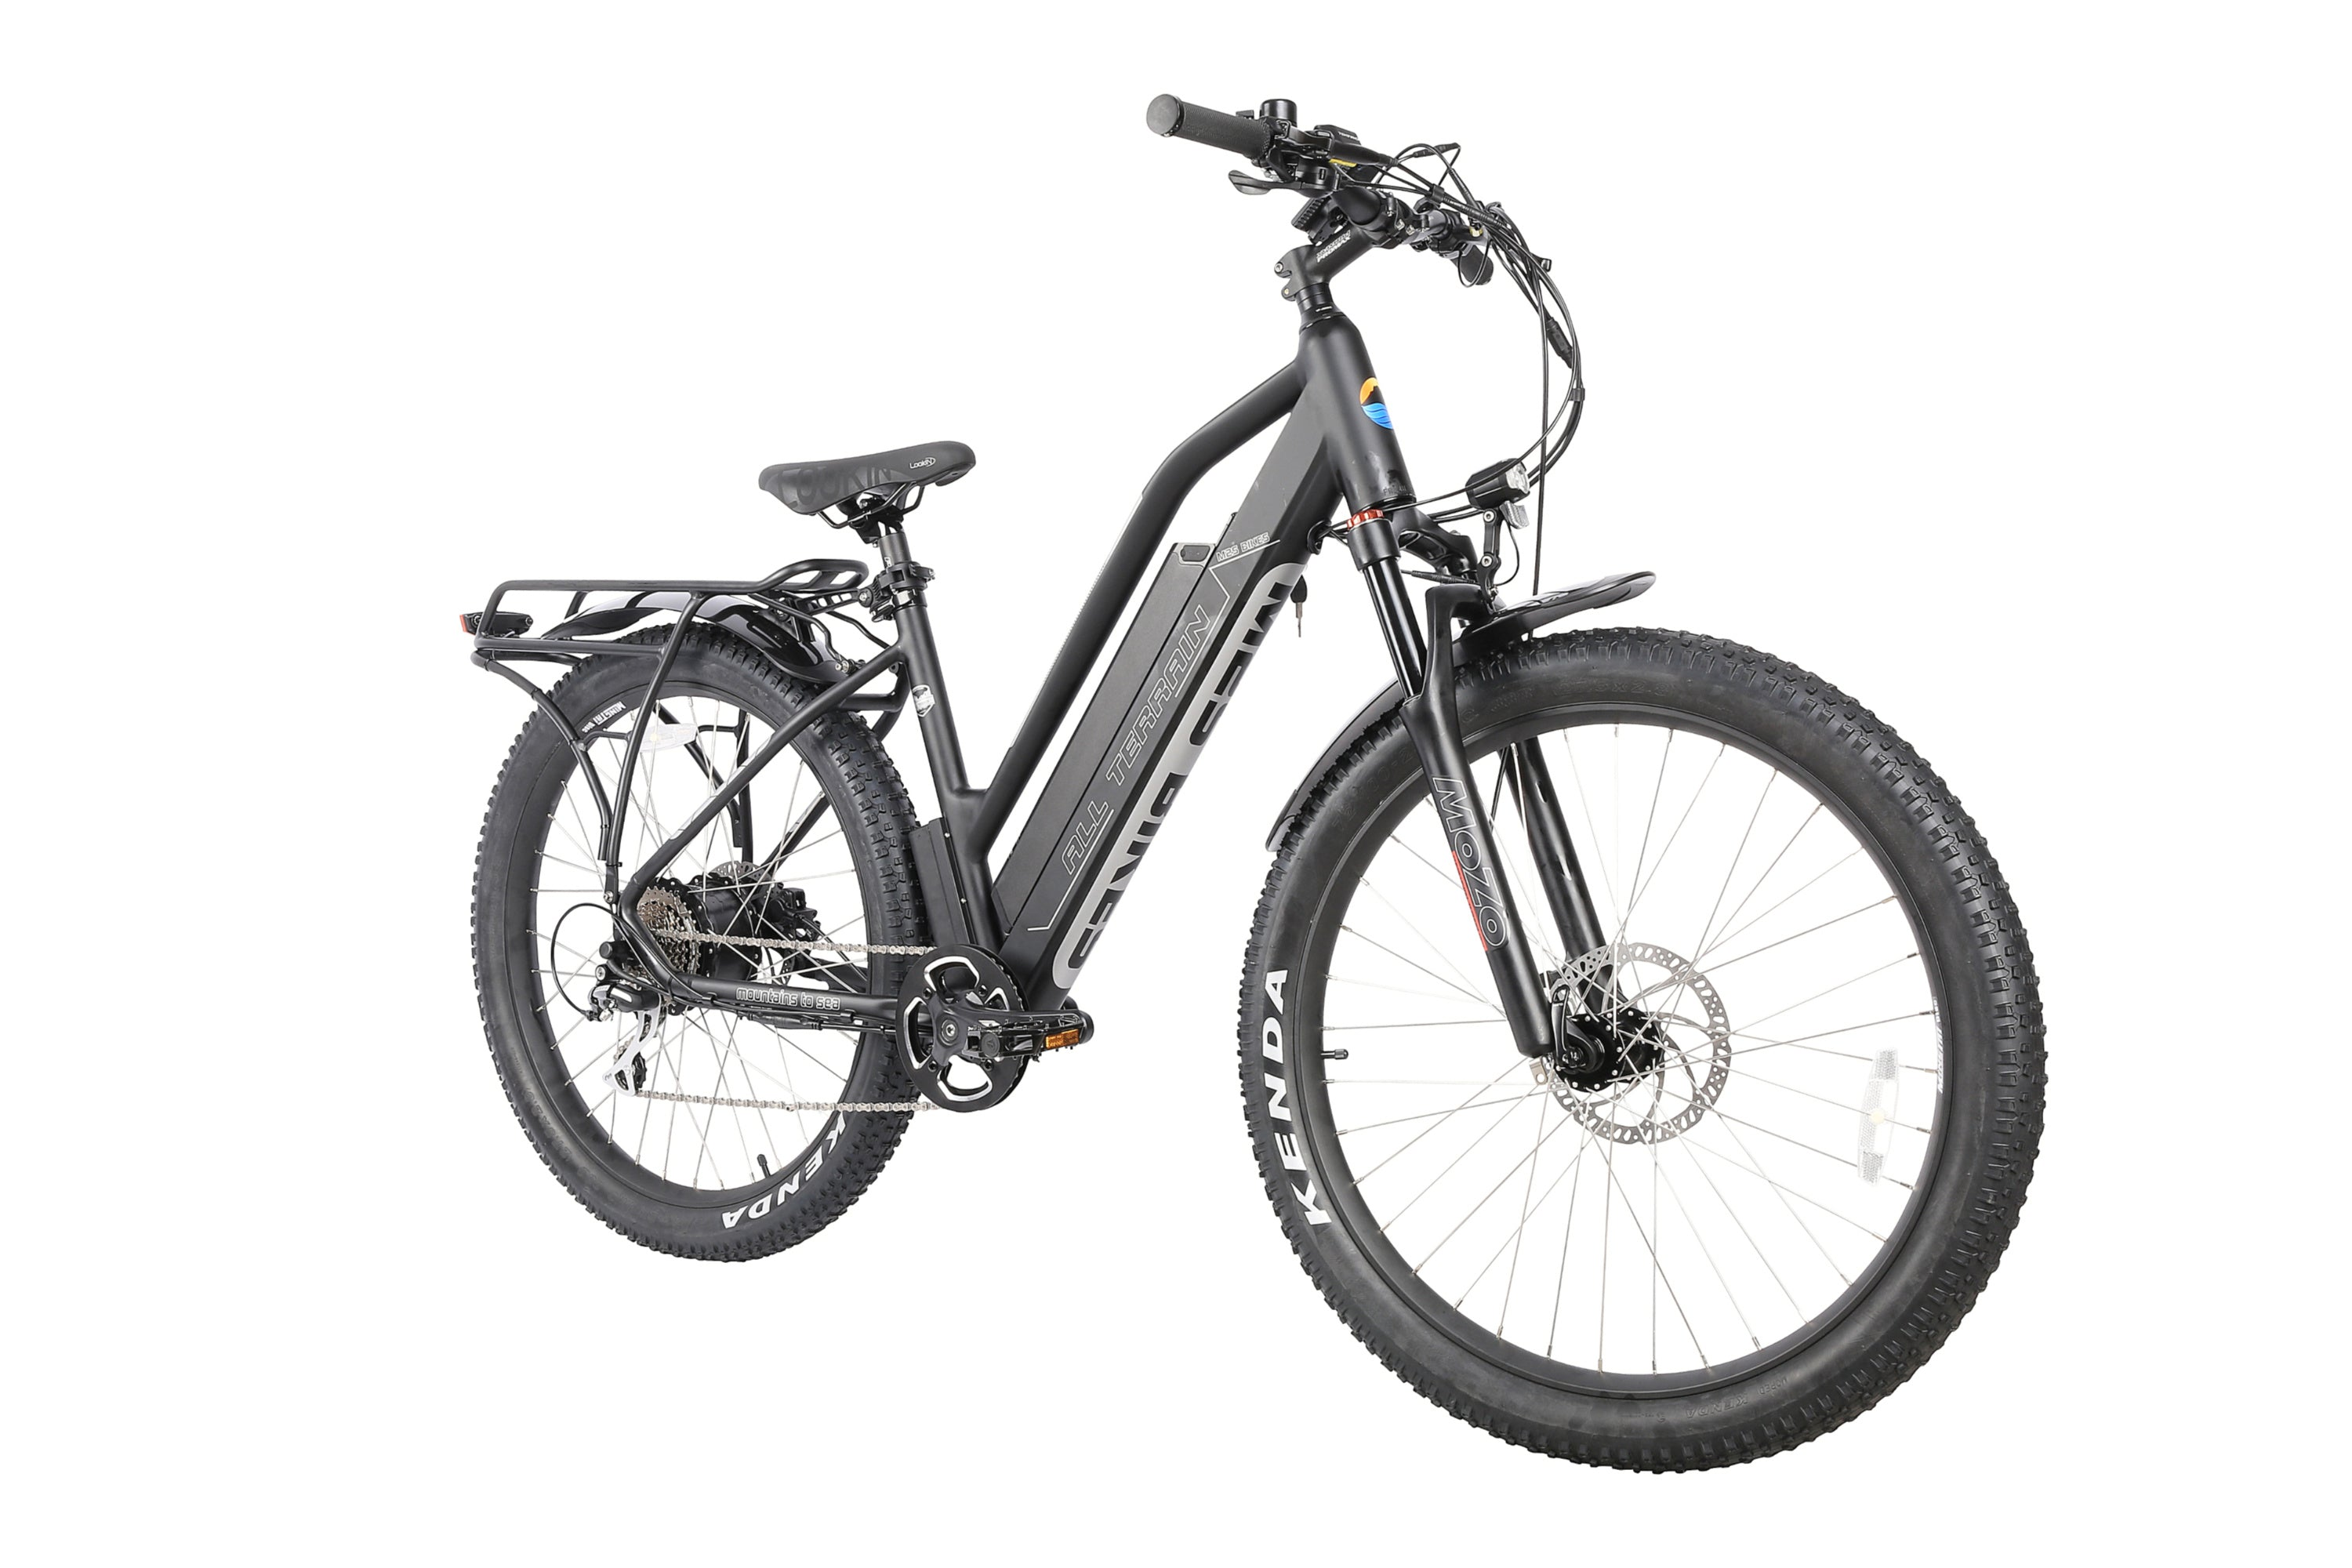 All Terrain Sport R750 (battery sold separately)